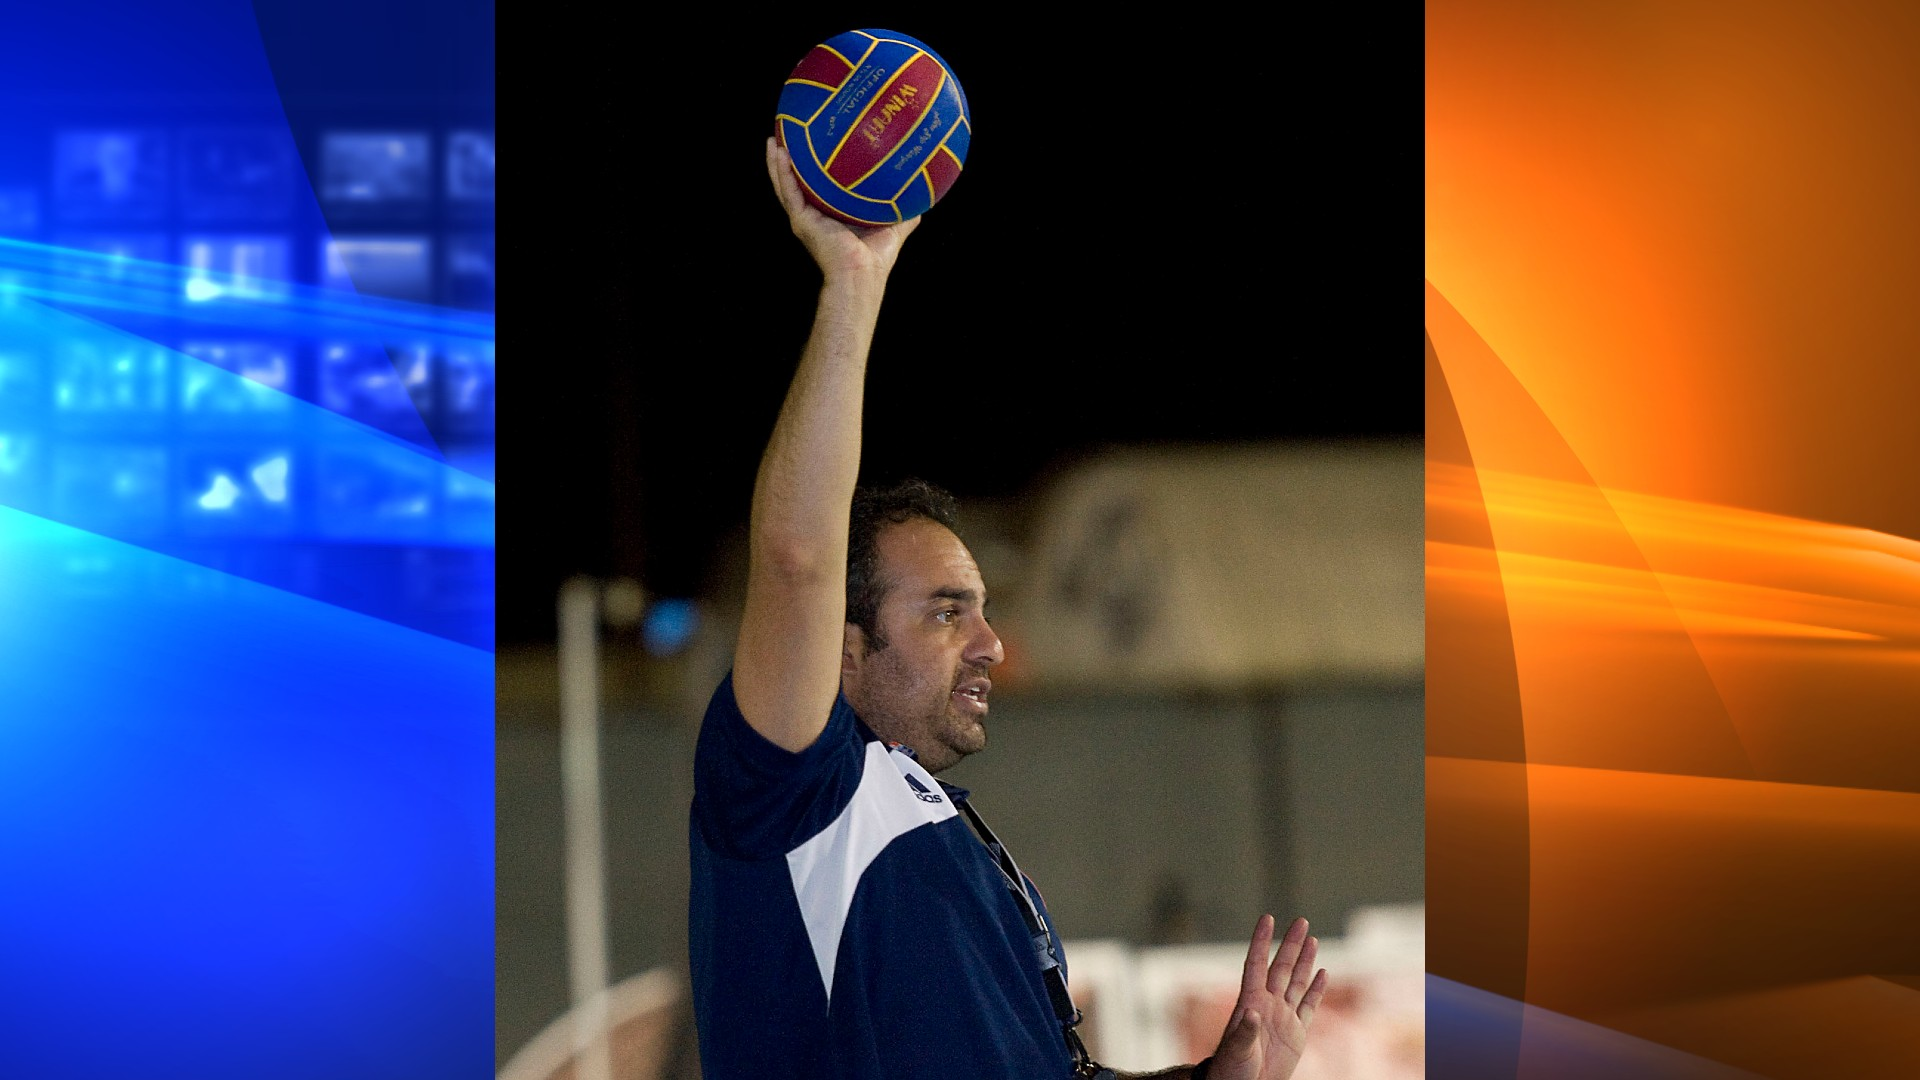 In this Sept. 23, 2013, file photo, Bahram Hojreh coaches youngsters at at the USA Water Polo National Training Center in Los Alamitos, Calif. (Rose Palmisano/The Orange County Register via AP, File)